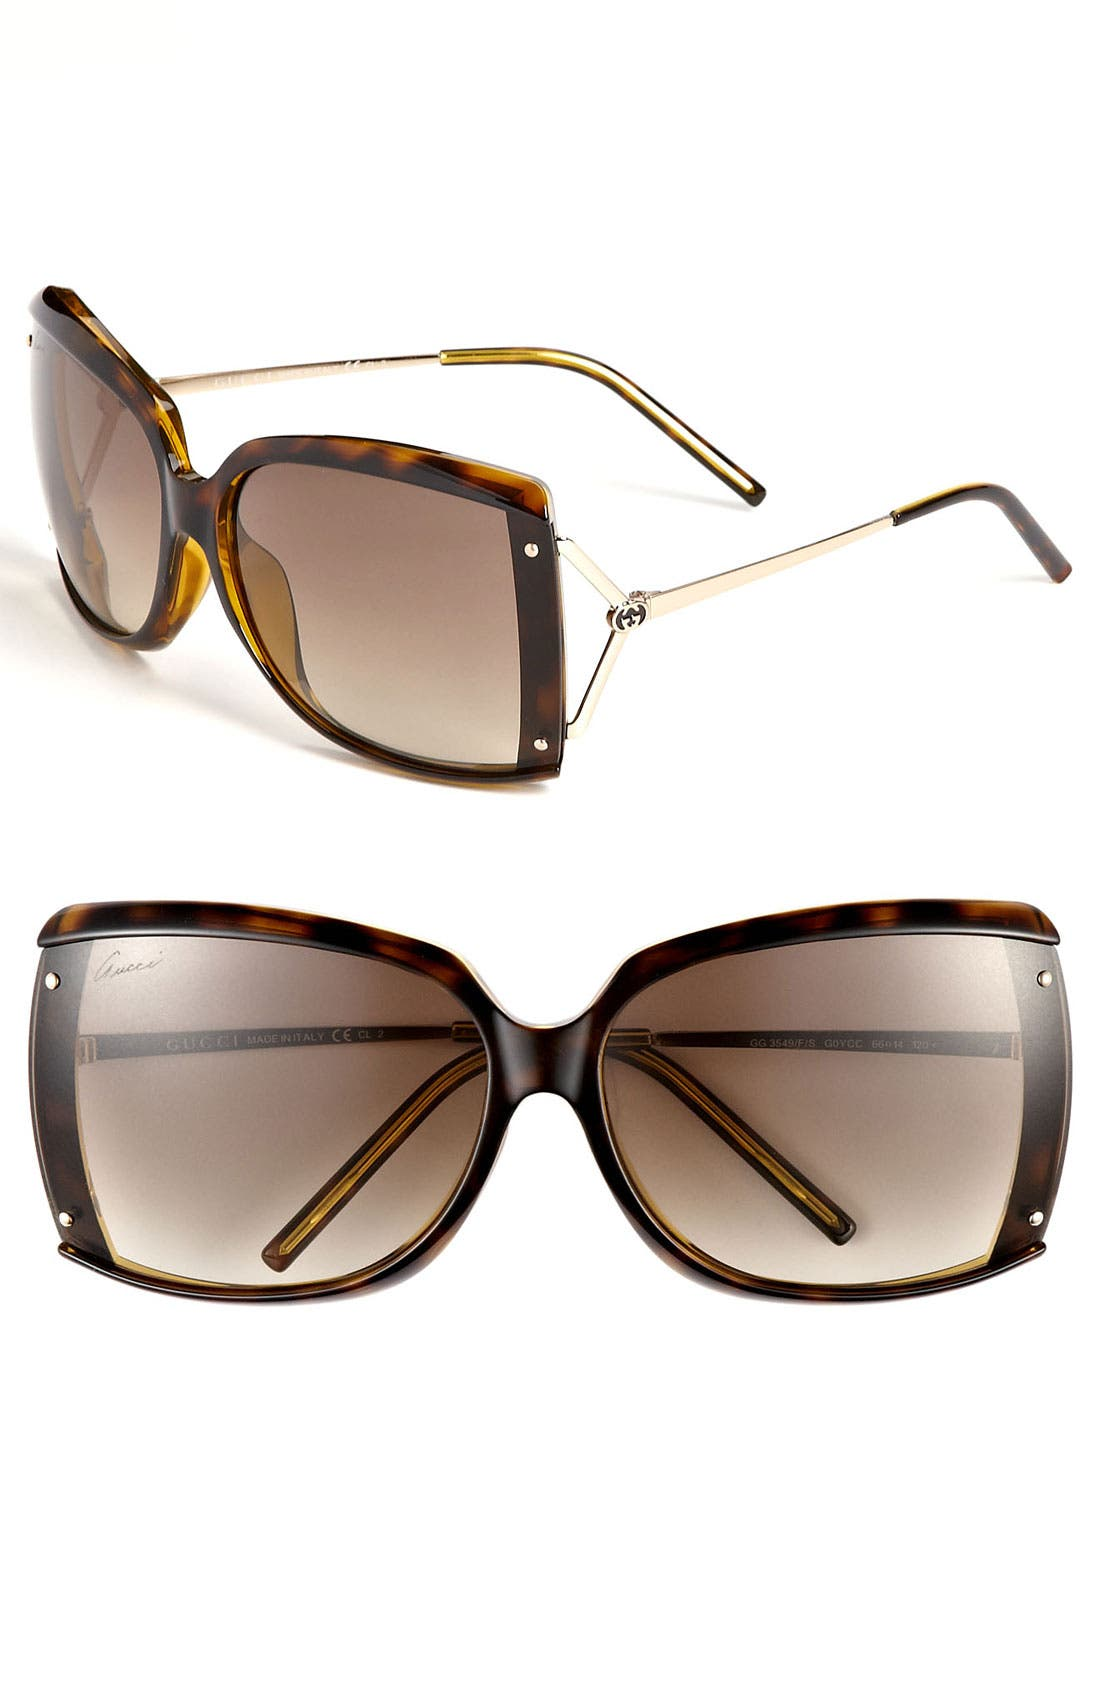 Main Image - Gucci 66mm Special Fit Sunglasses